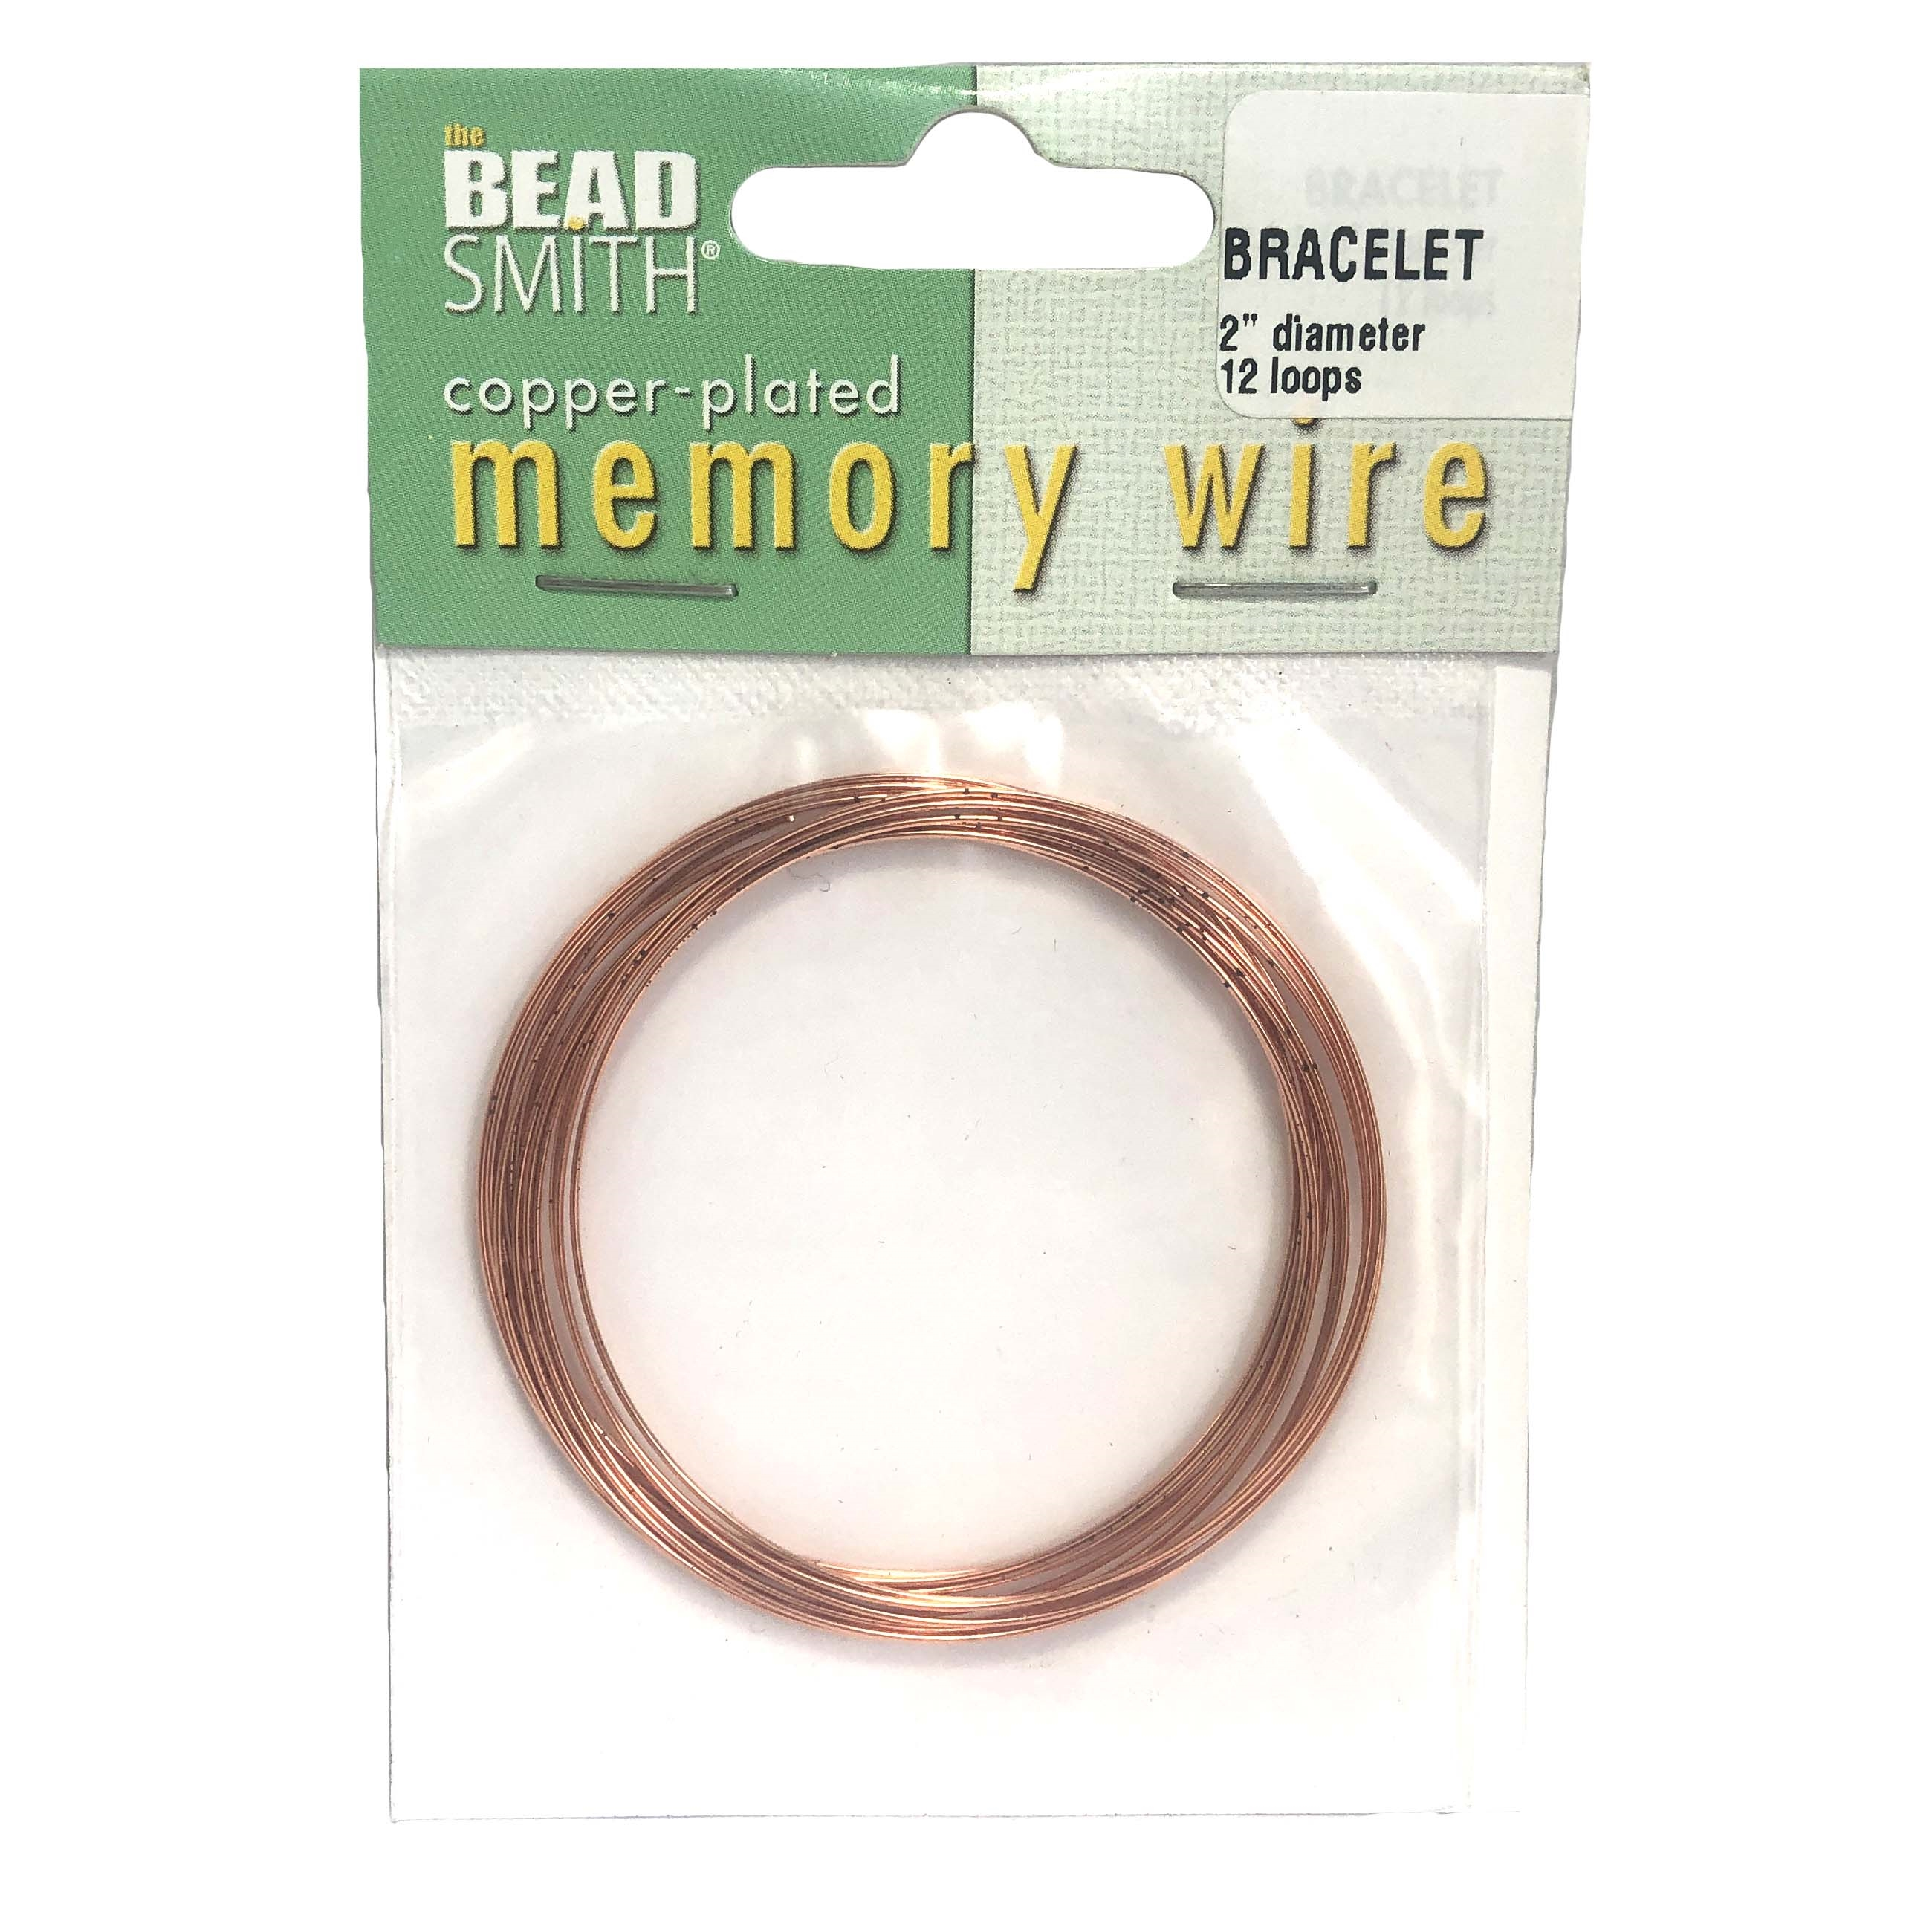 Memory Wire Bracelet Making Round Copper Plated 2 Inch Diameter 12 Loops